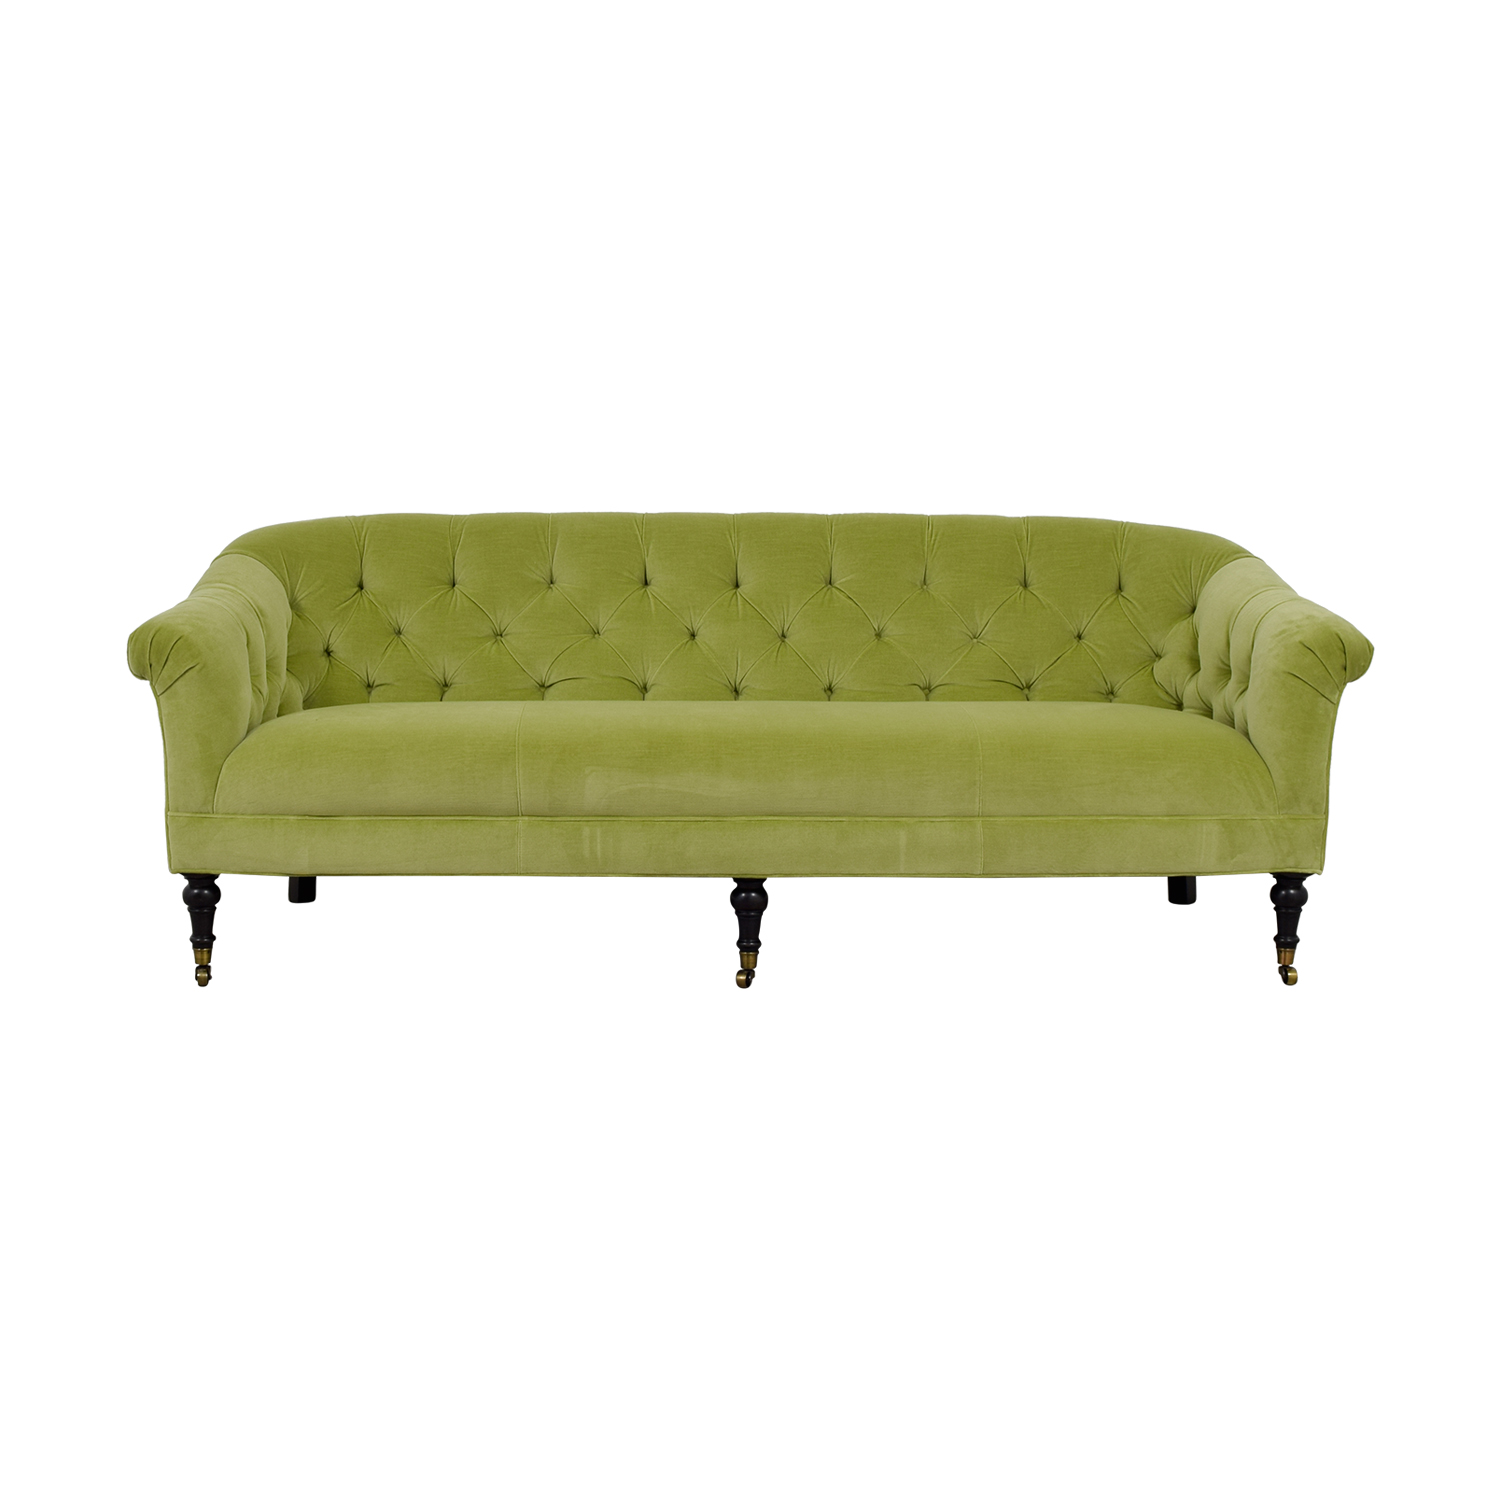 shop Arhaus Green Tufted Sofa Arhaus Classic Sofas